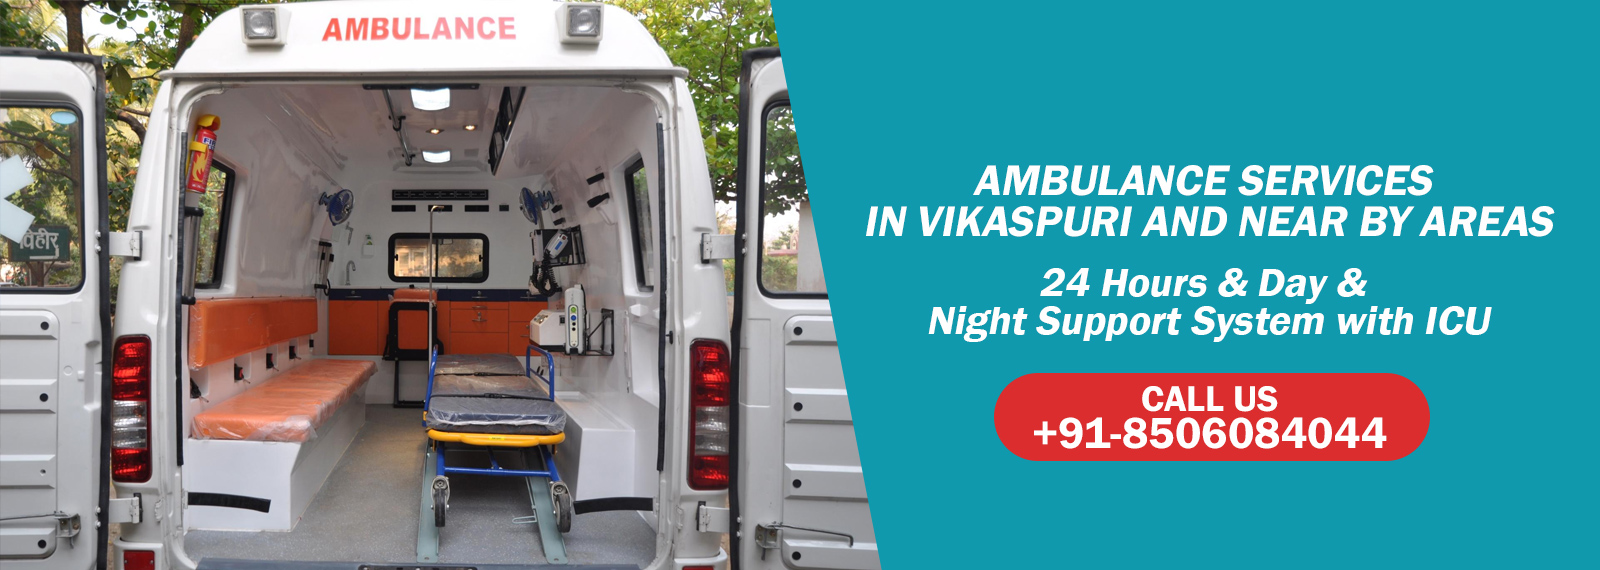 Ambulance Services in Vikas Puri